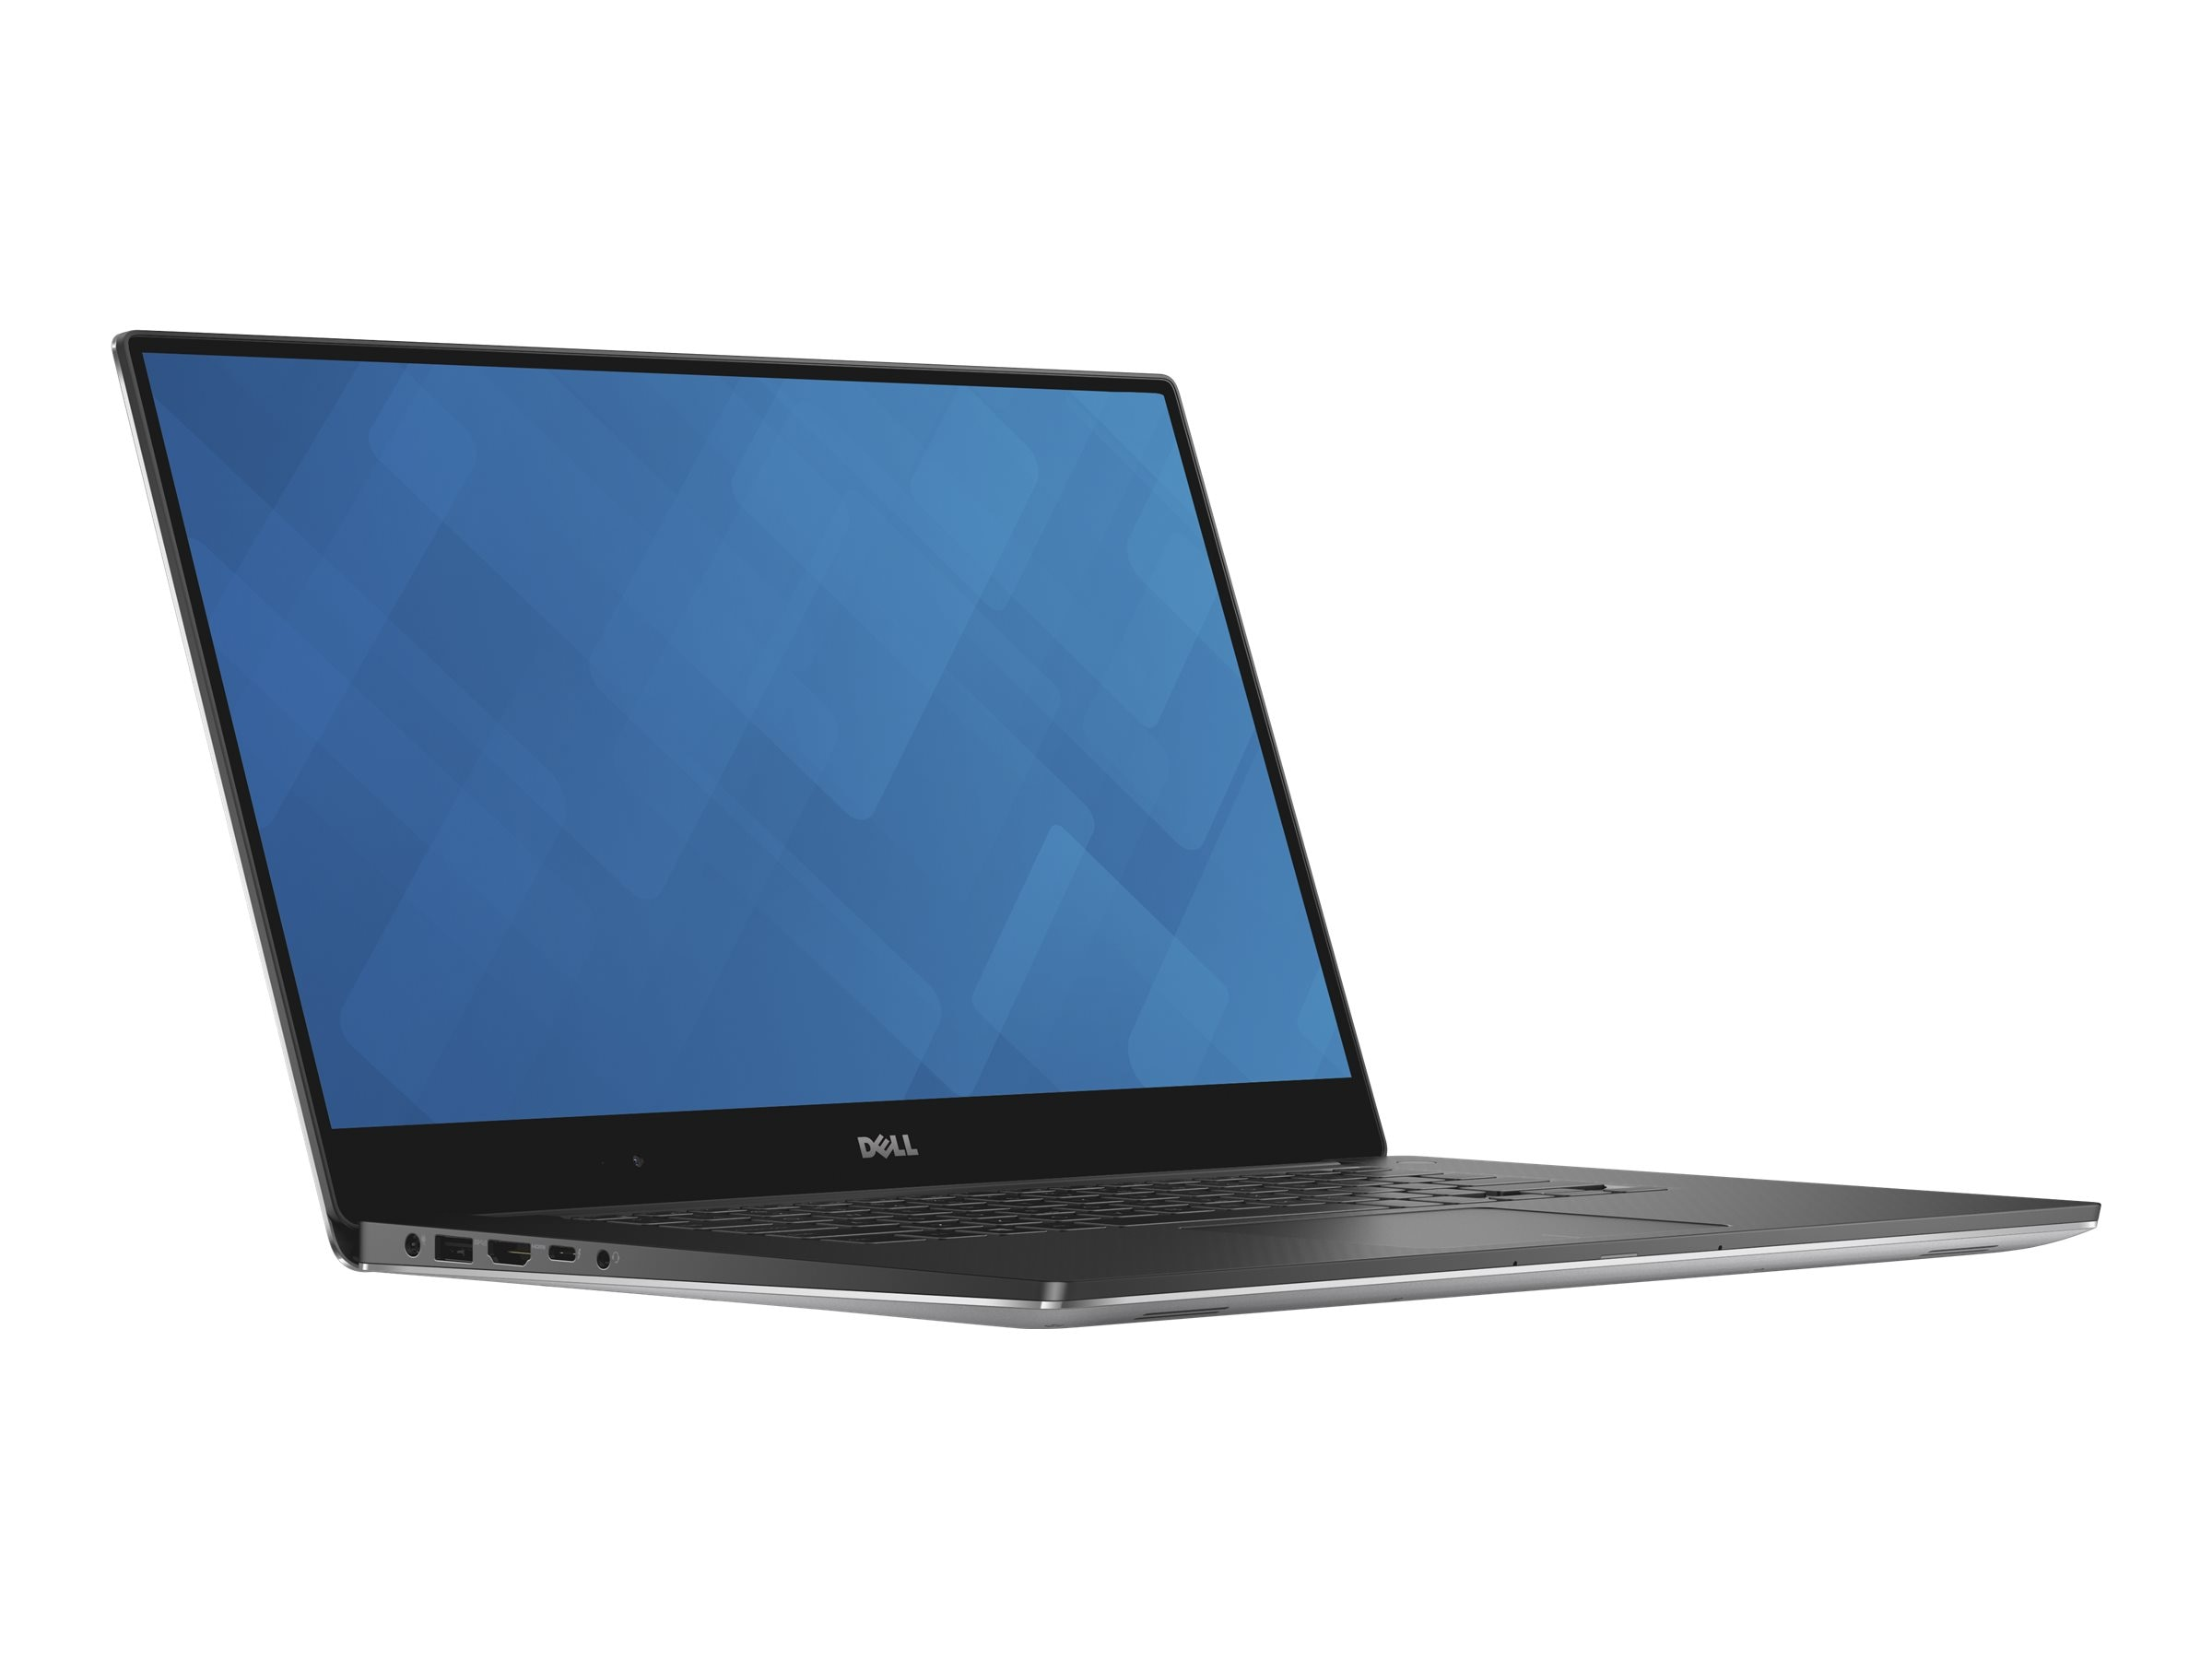 Dell XPS 15 Core i5-6300HQ 2.3GHz 8GB 256GB PCIe SSD GTX 960M ac BT WC 15.6 UHD Touch W10P64